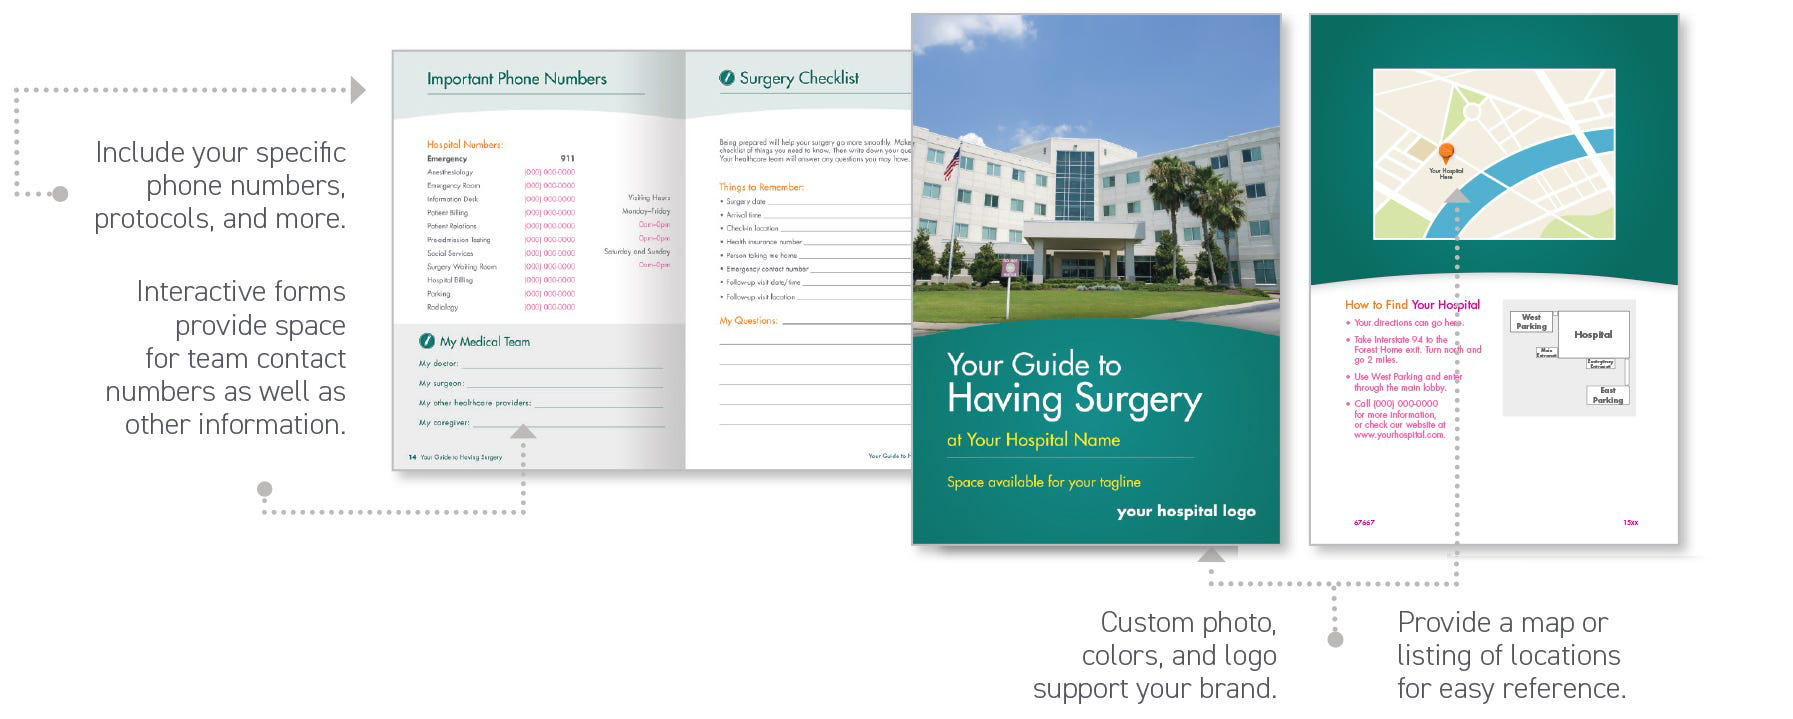 Templates: Easy-to-modify template booklets offer a fast and economical way to develop education that reflects your facility. Fill in the blanks and make changes within the template to create a guide for your patients' experience.